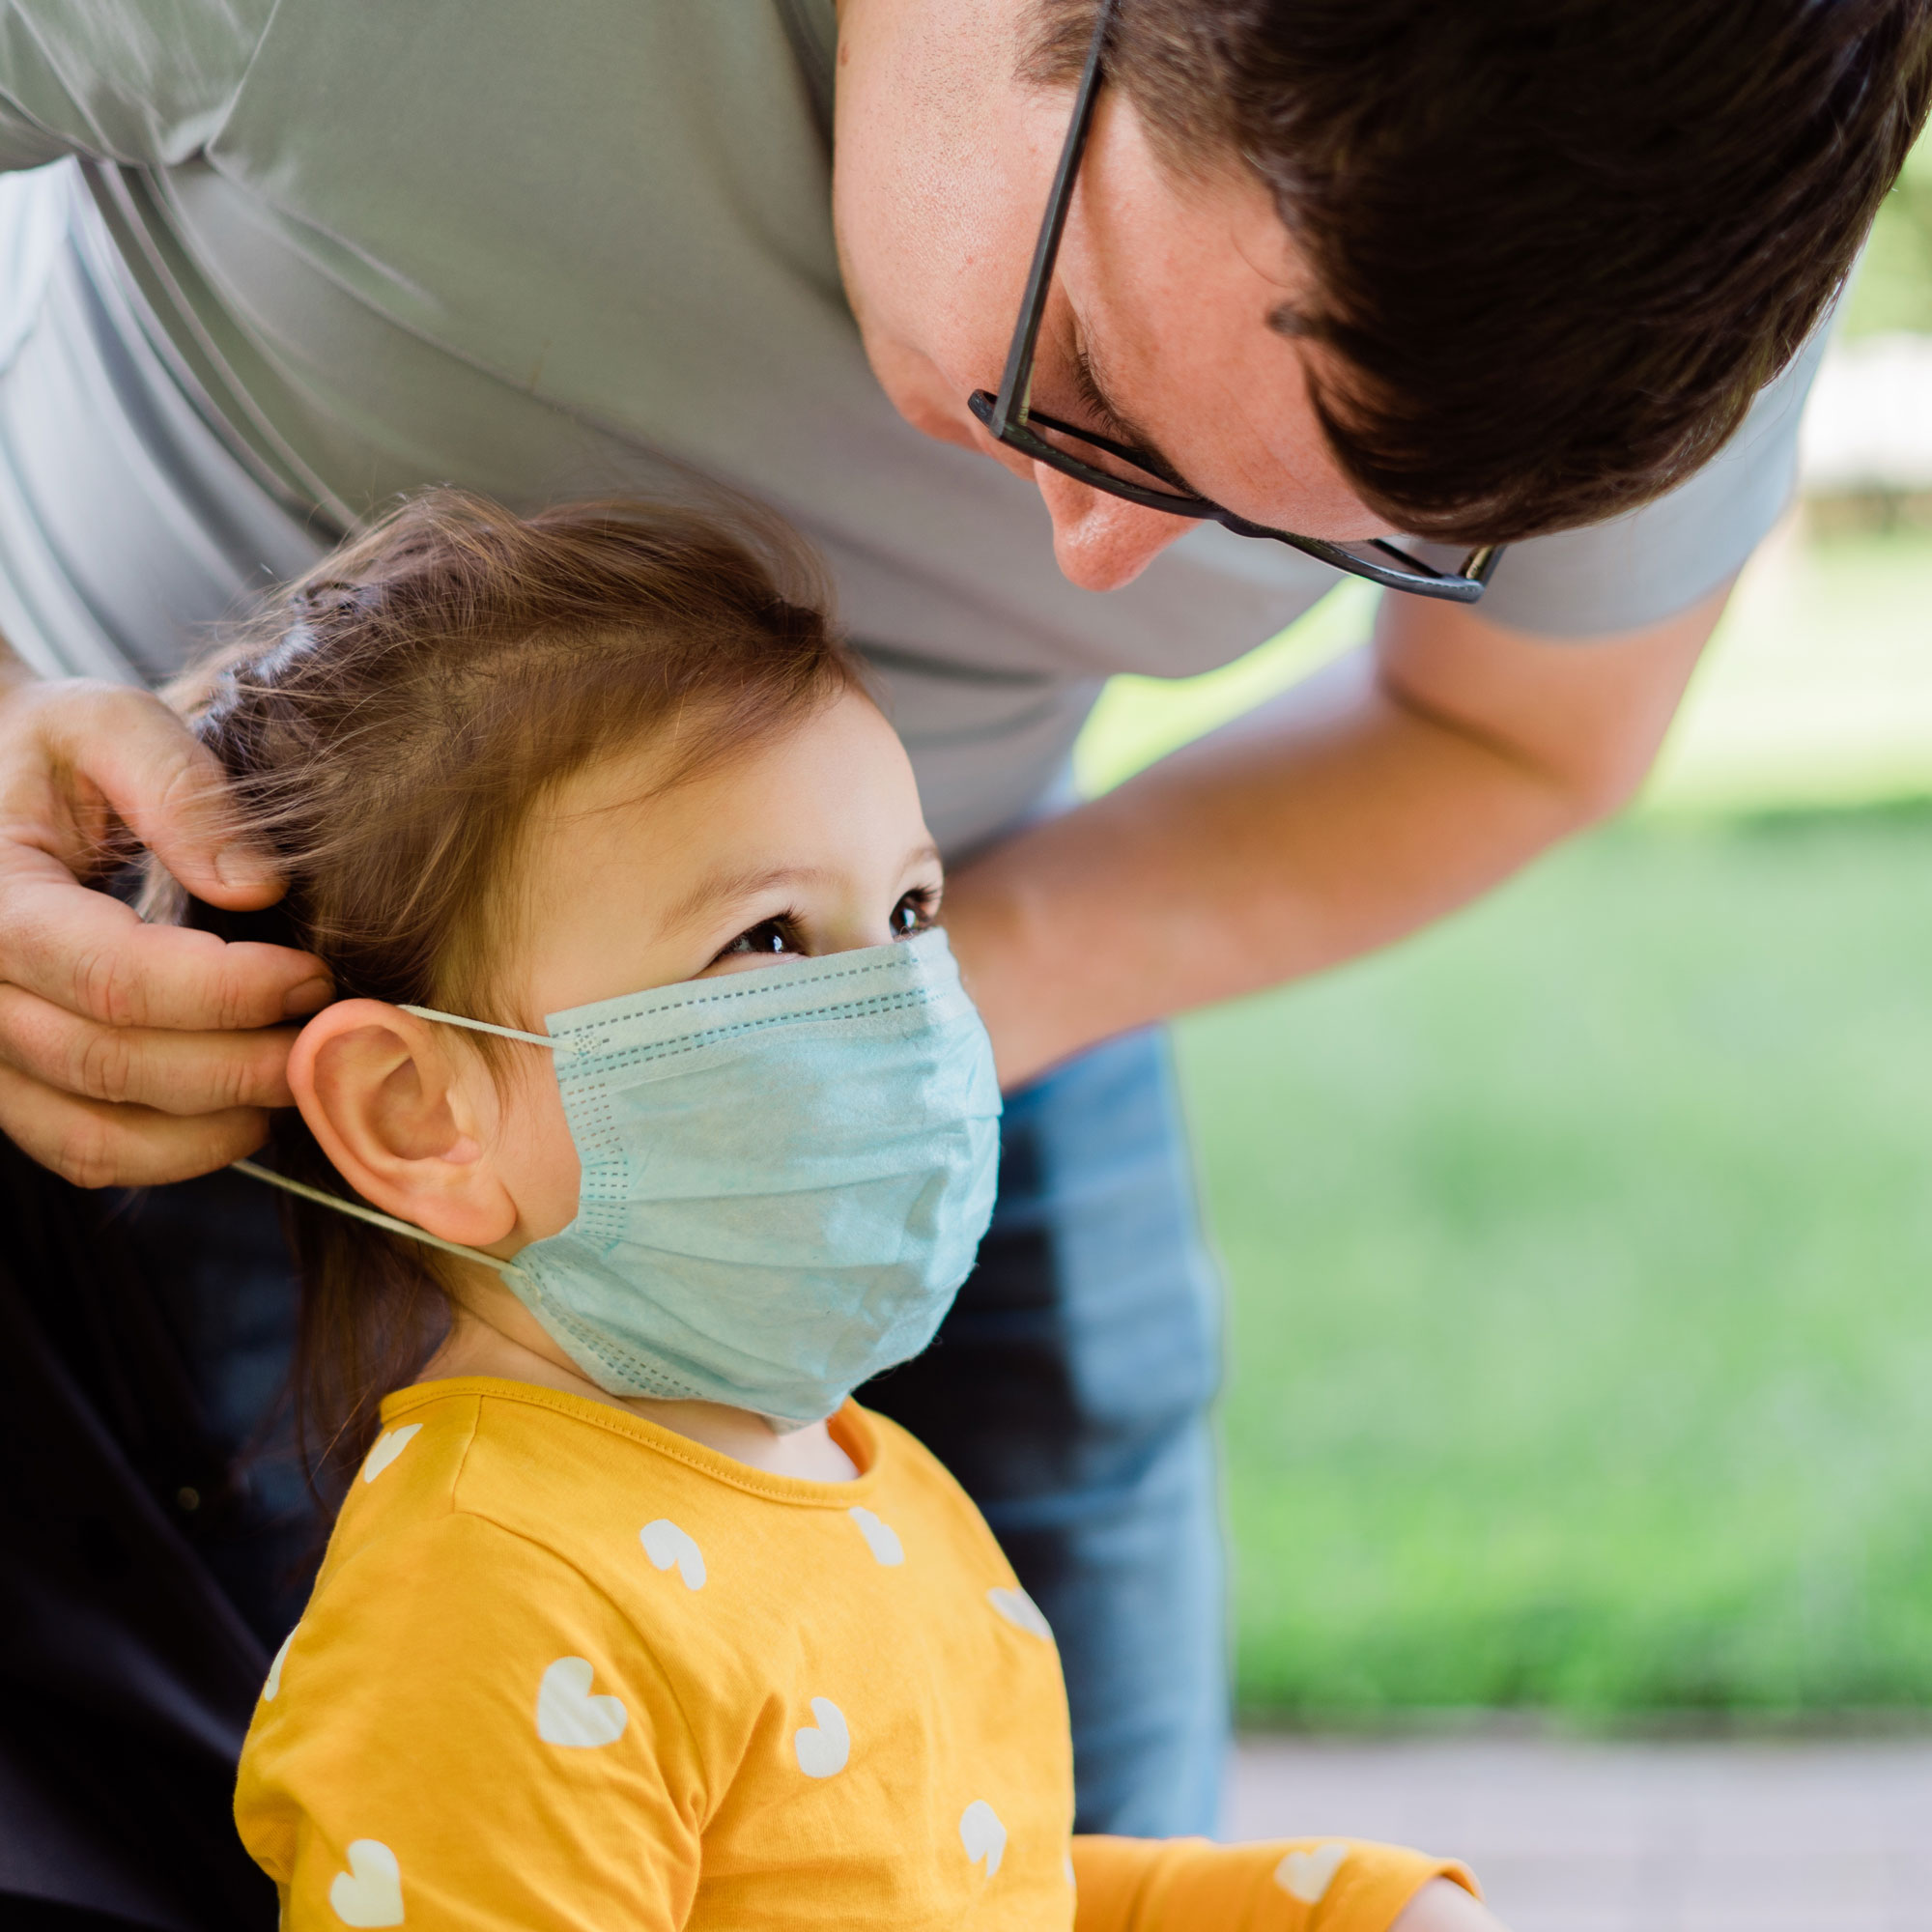 a dad puts a surgical mask on his young daughter